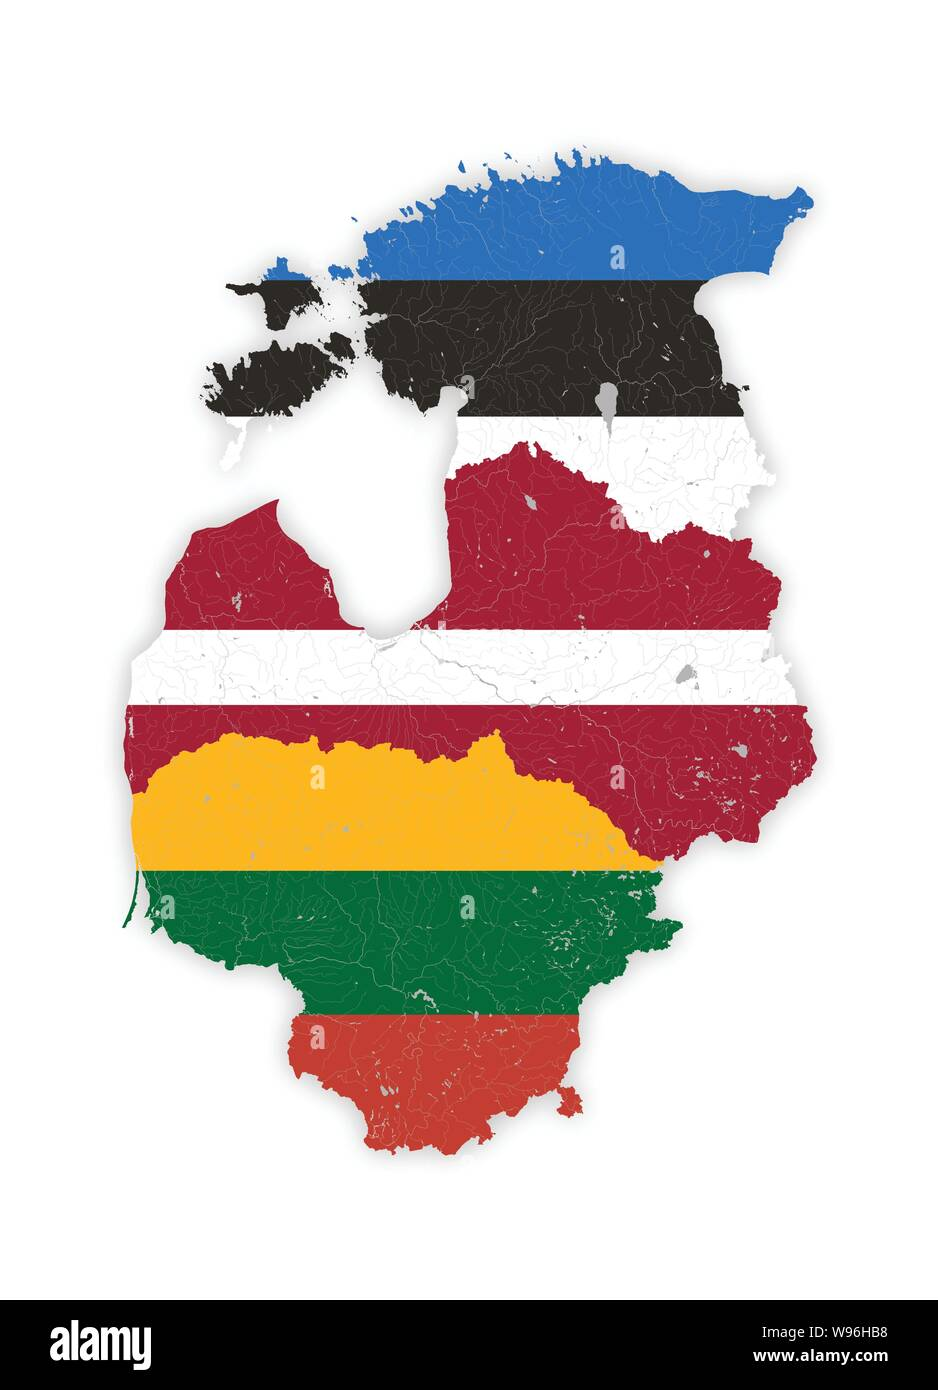 Map of Baltic states with rivers and lakes in colors of the national flags of Baltic states. Please look at my other images of cartographic series - t Stock Vector